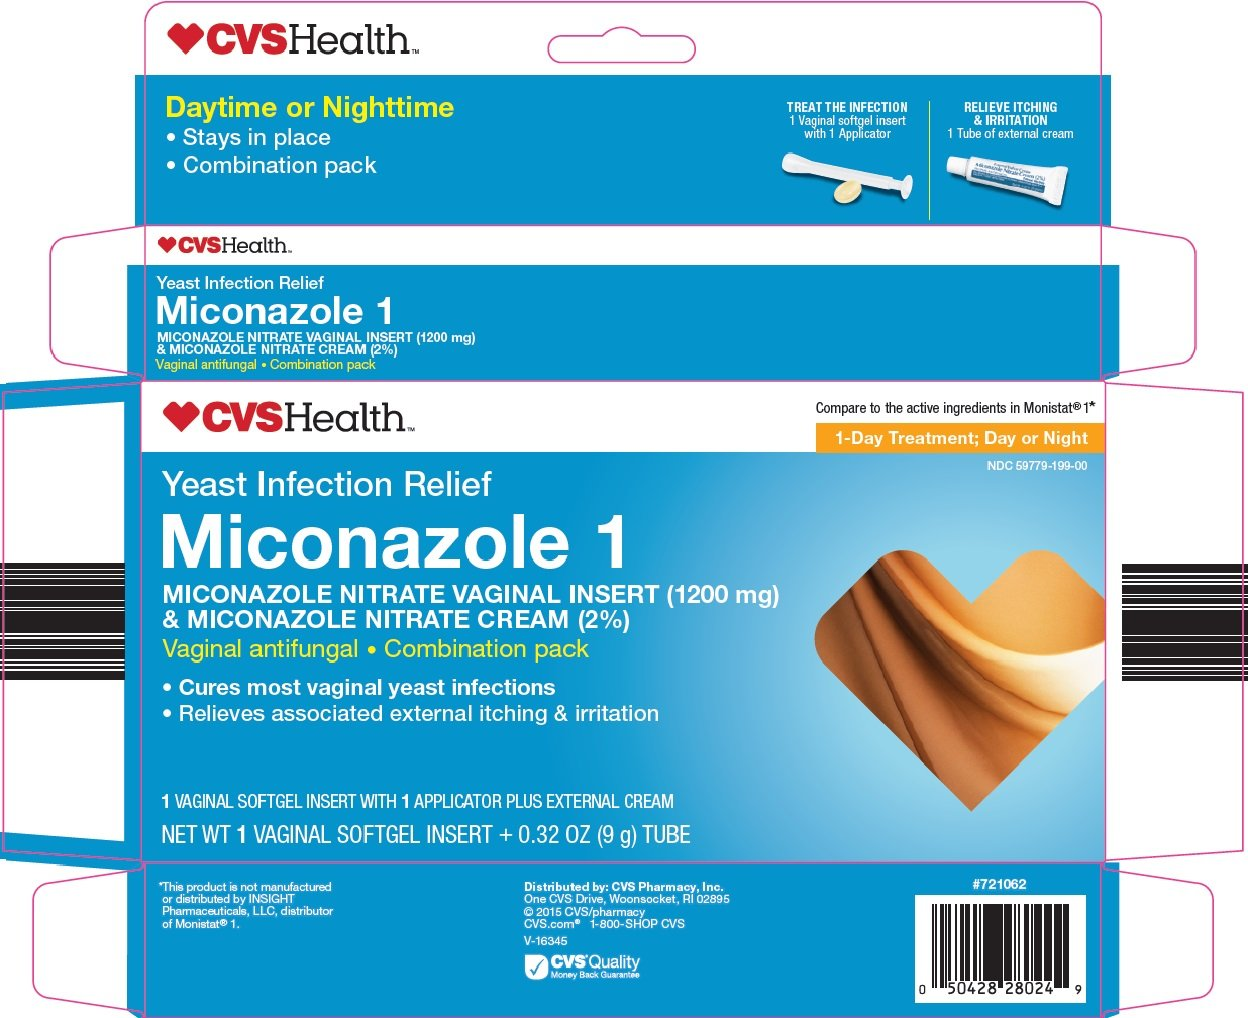 miconazole 1 yeast infection relief  kit  cvs pharmacy